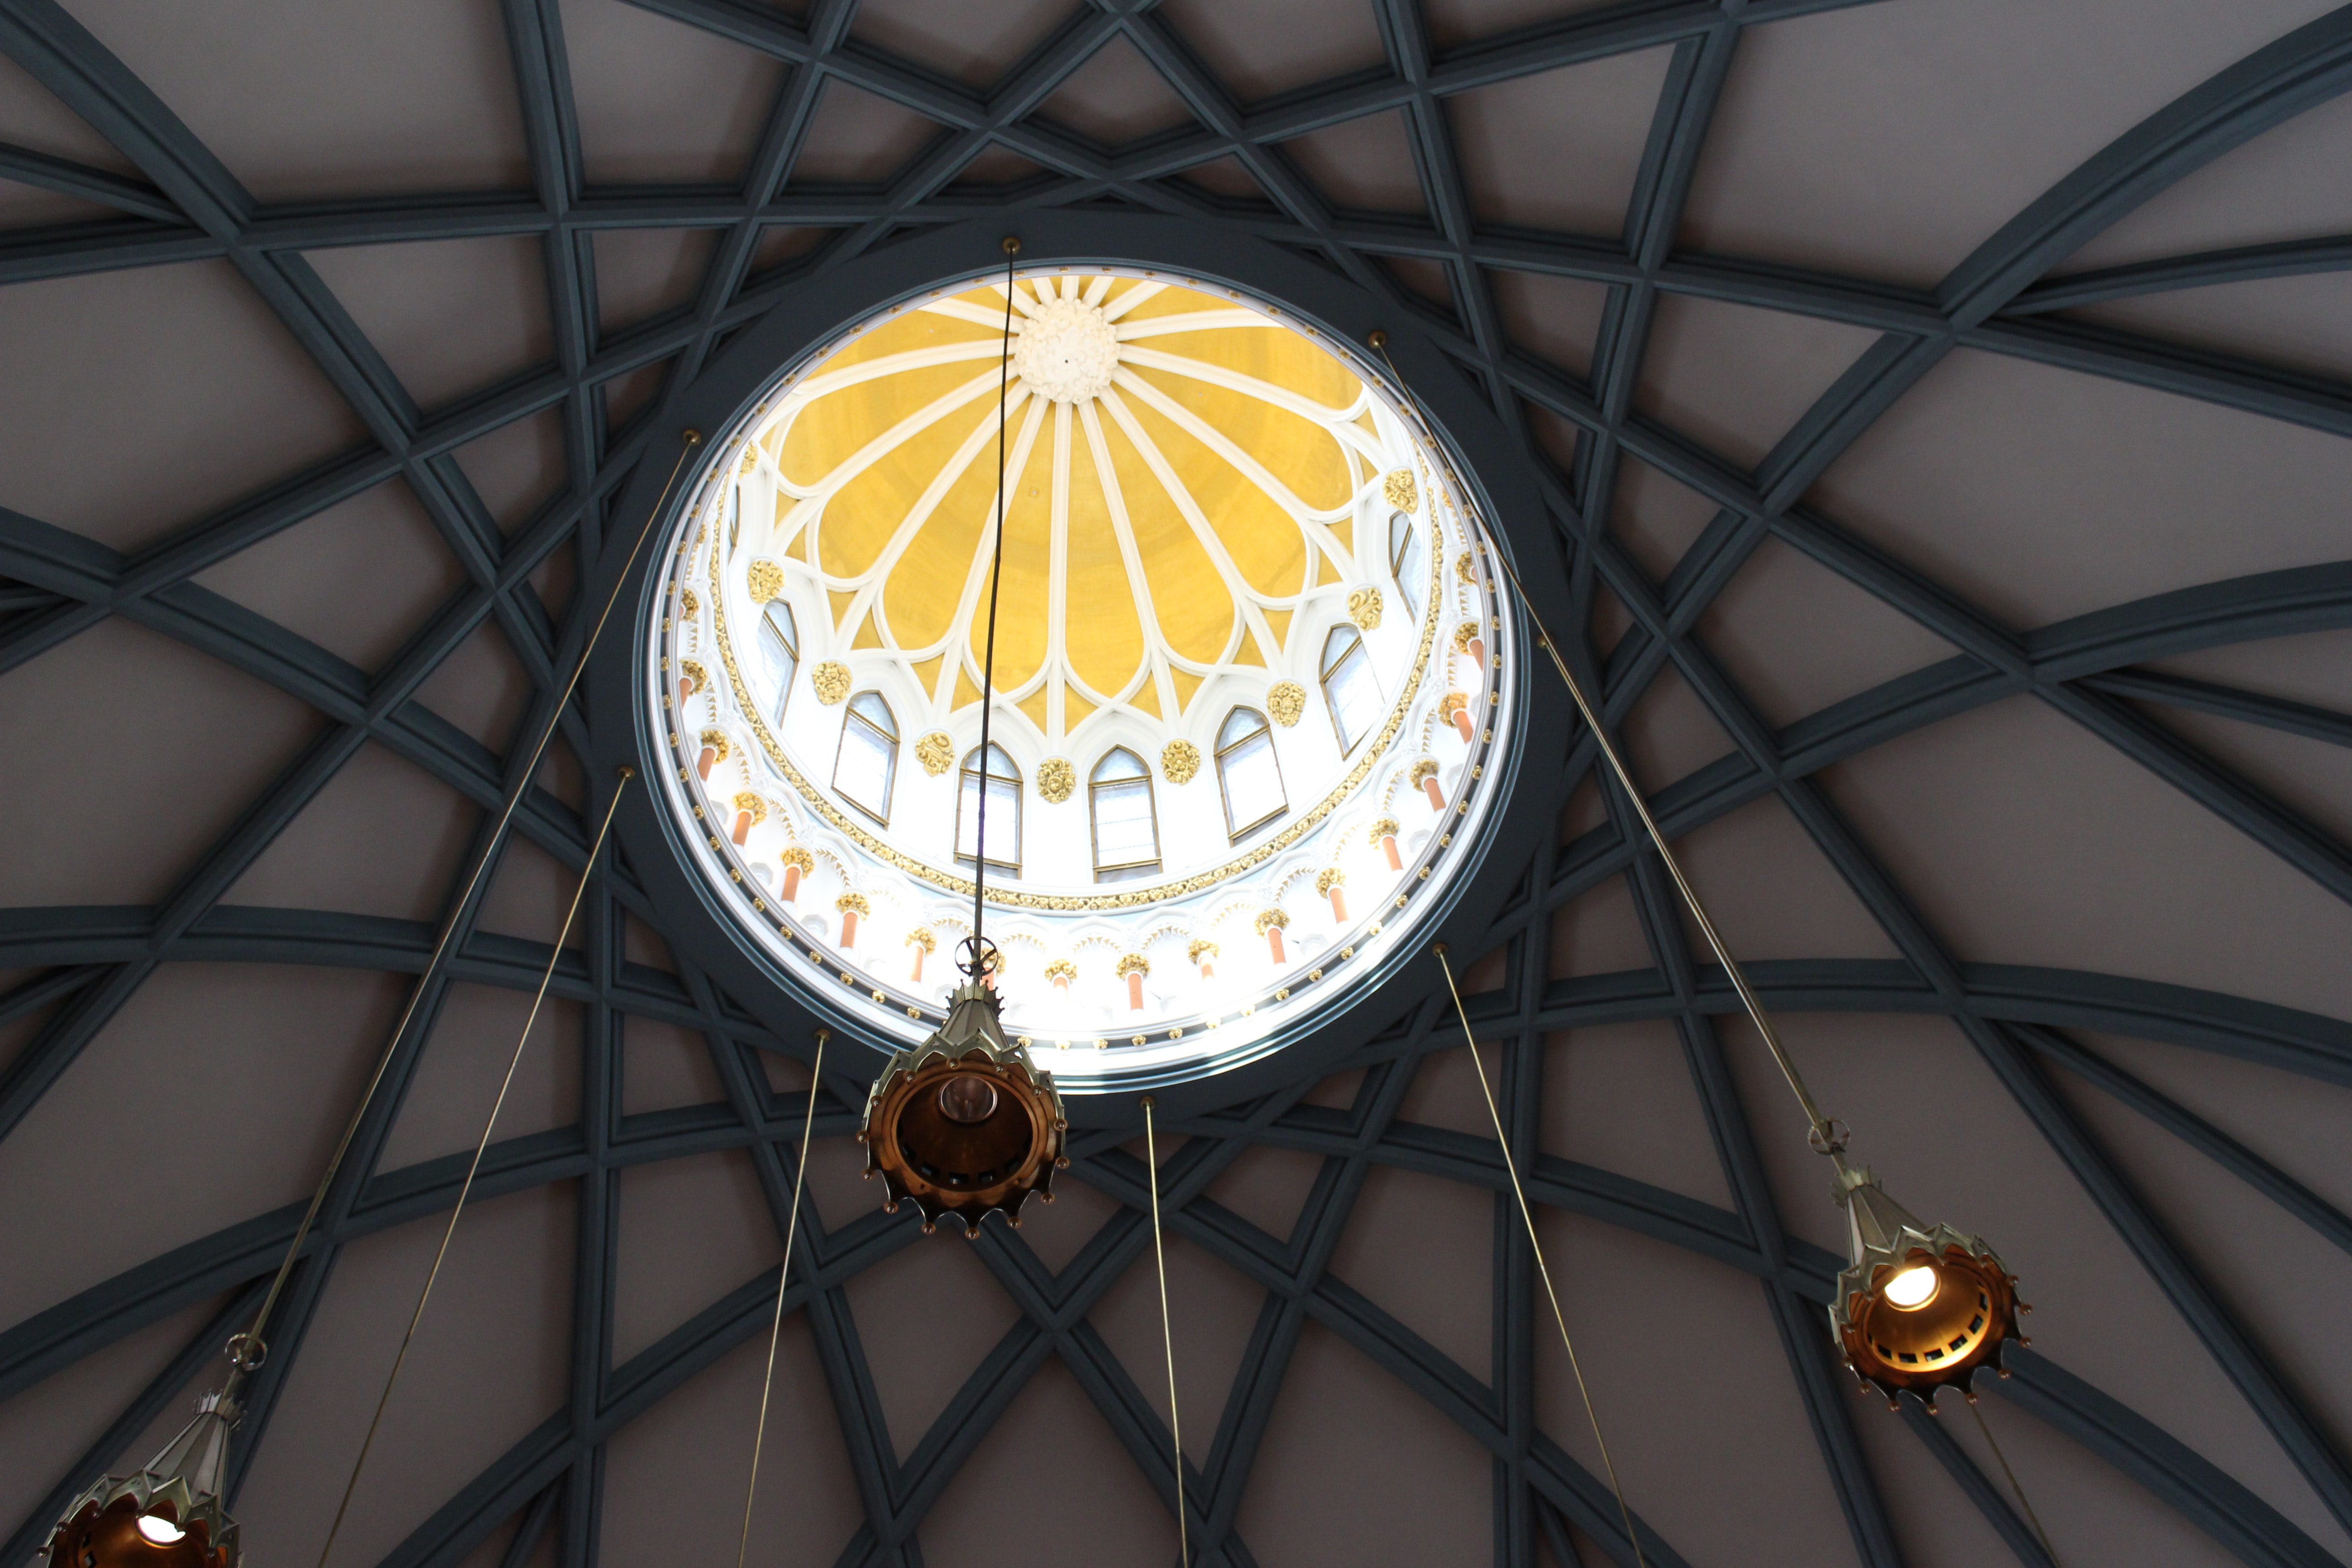 photo of hanging pendant lamps on building ceiling